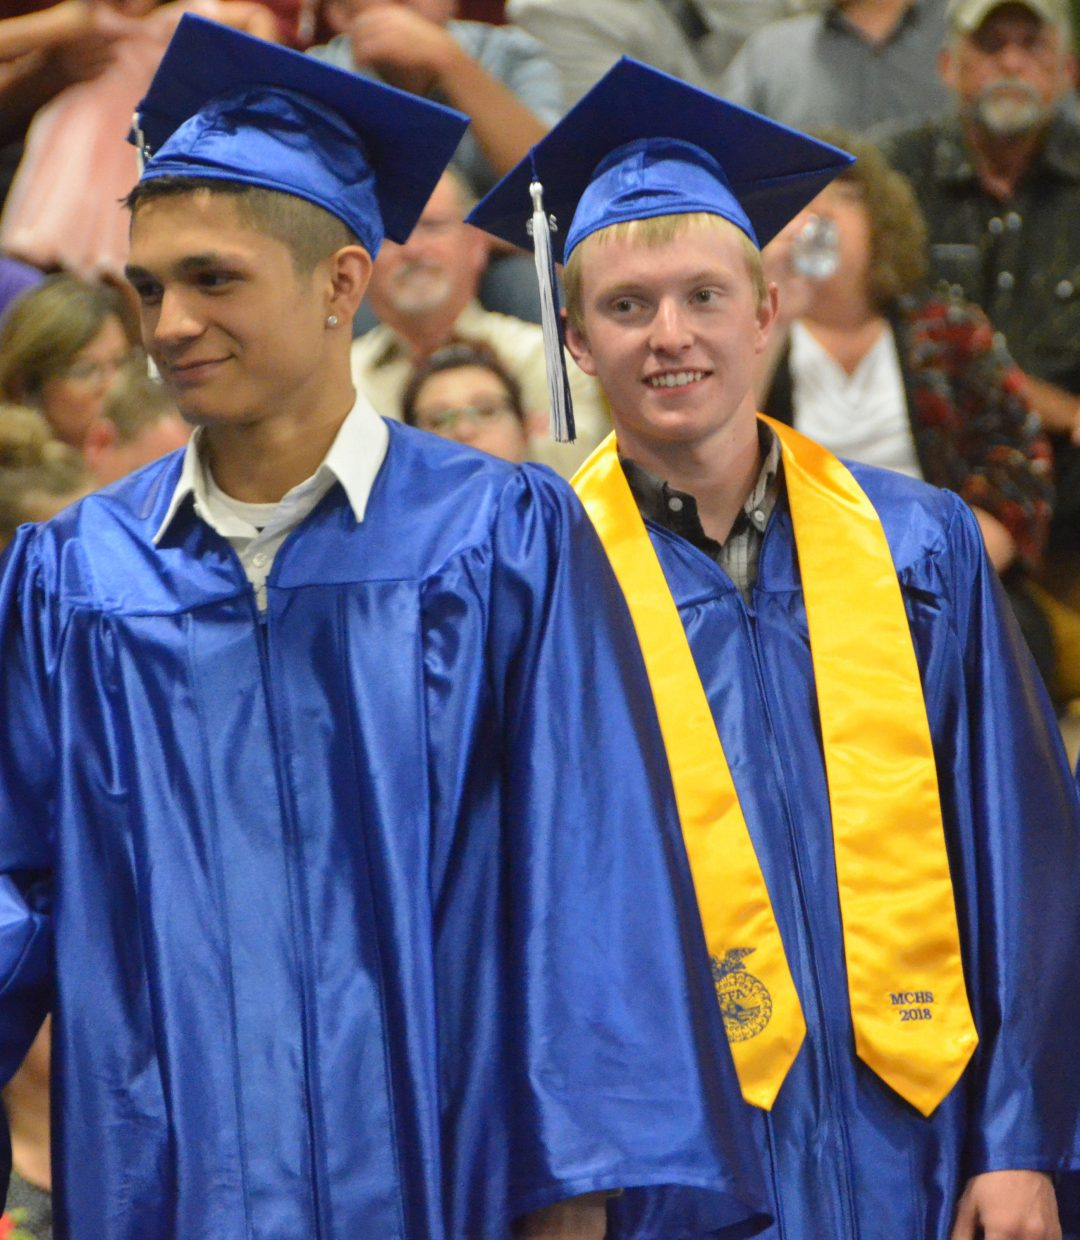 Moffat County High School's Alex Nevarez and Blake Nelson ready to head on stage during Saturday's graduation ceremony.